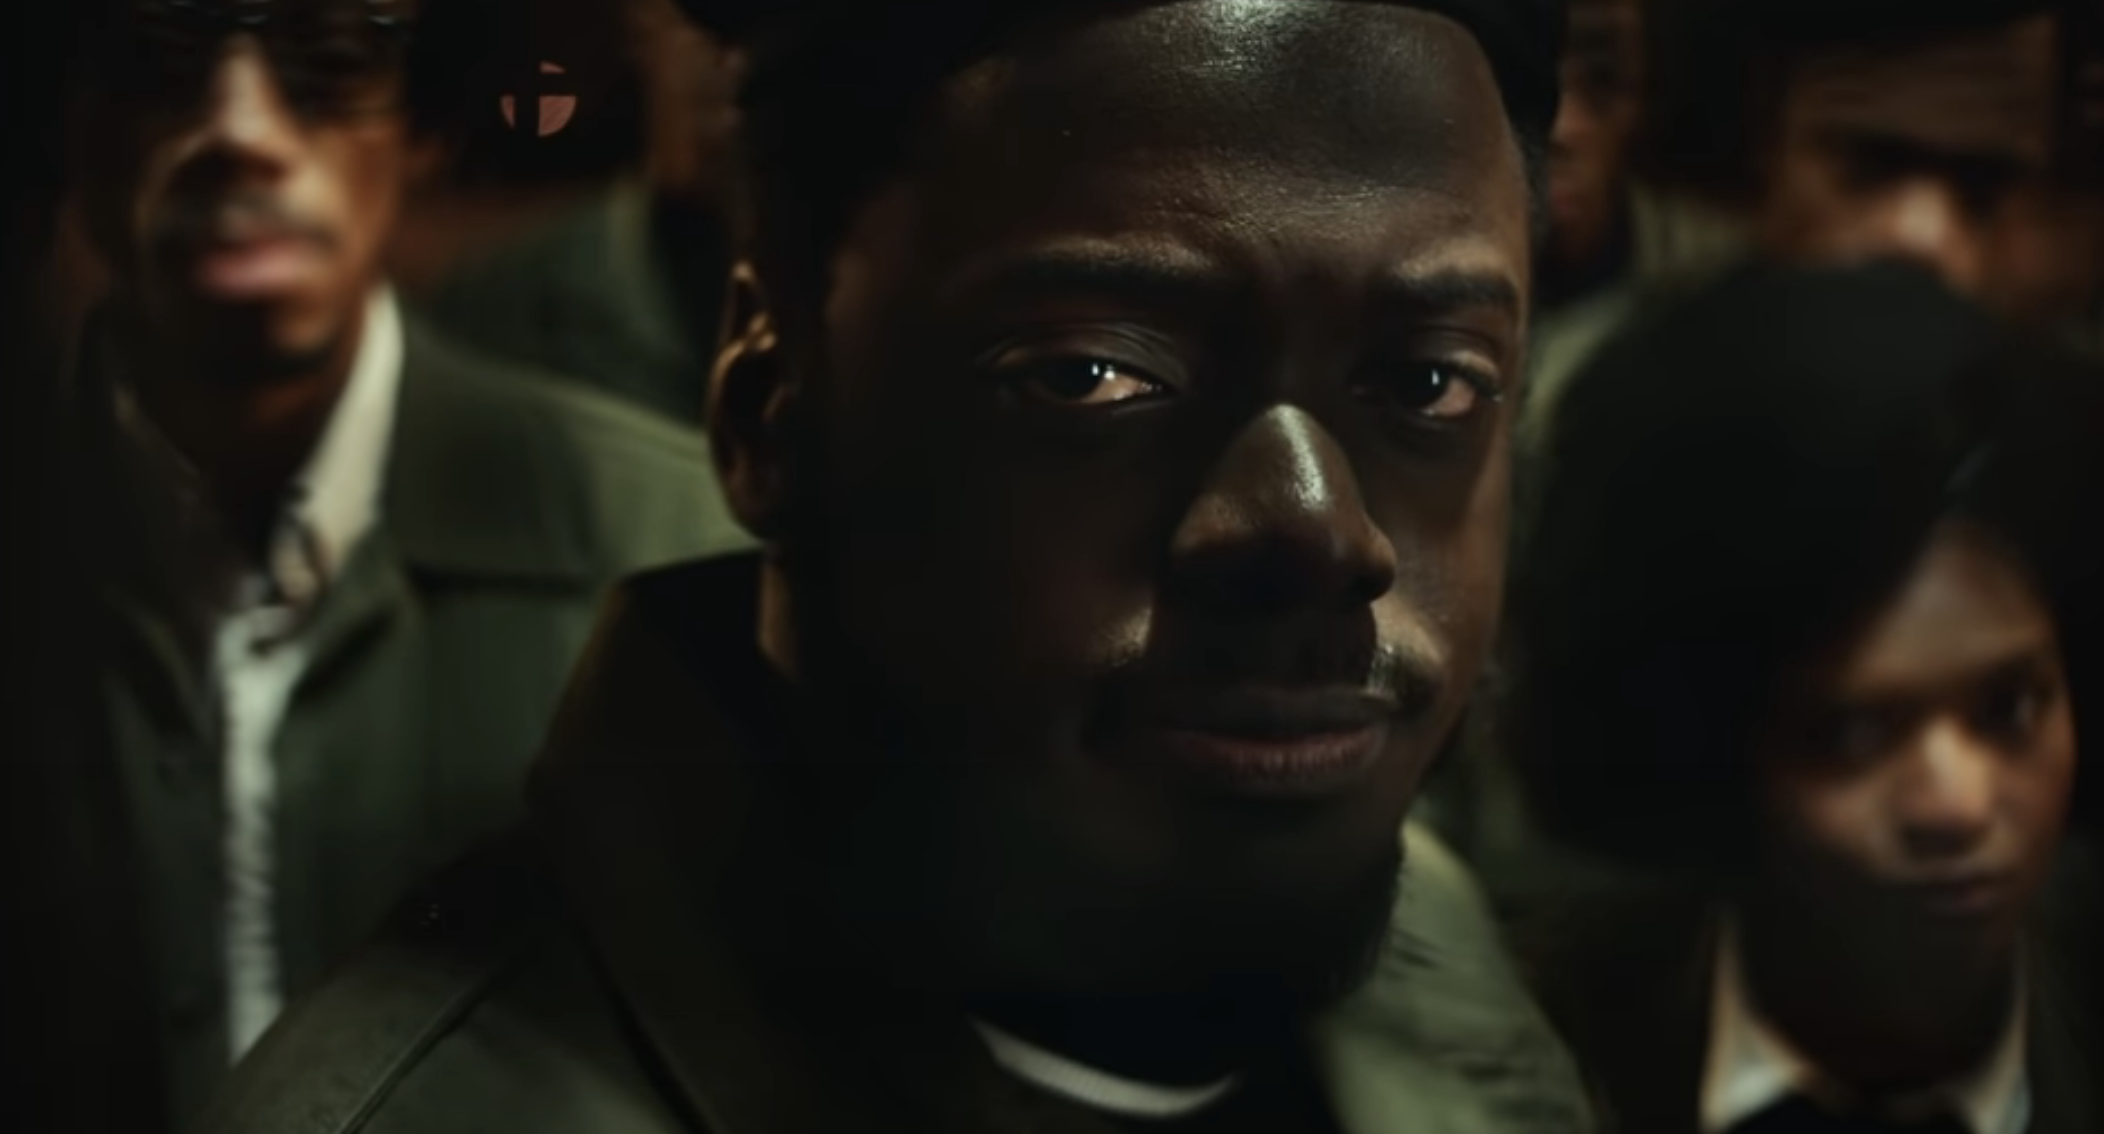 Watch The Trailer For 'Judas And The Black Messiah,' The Story About Fred Hampton's Assassination